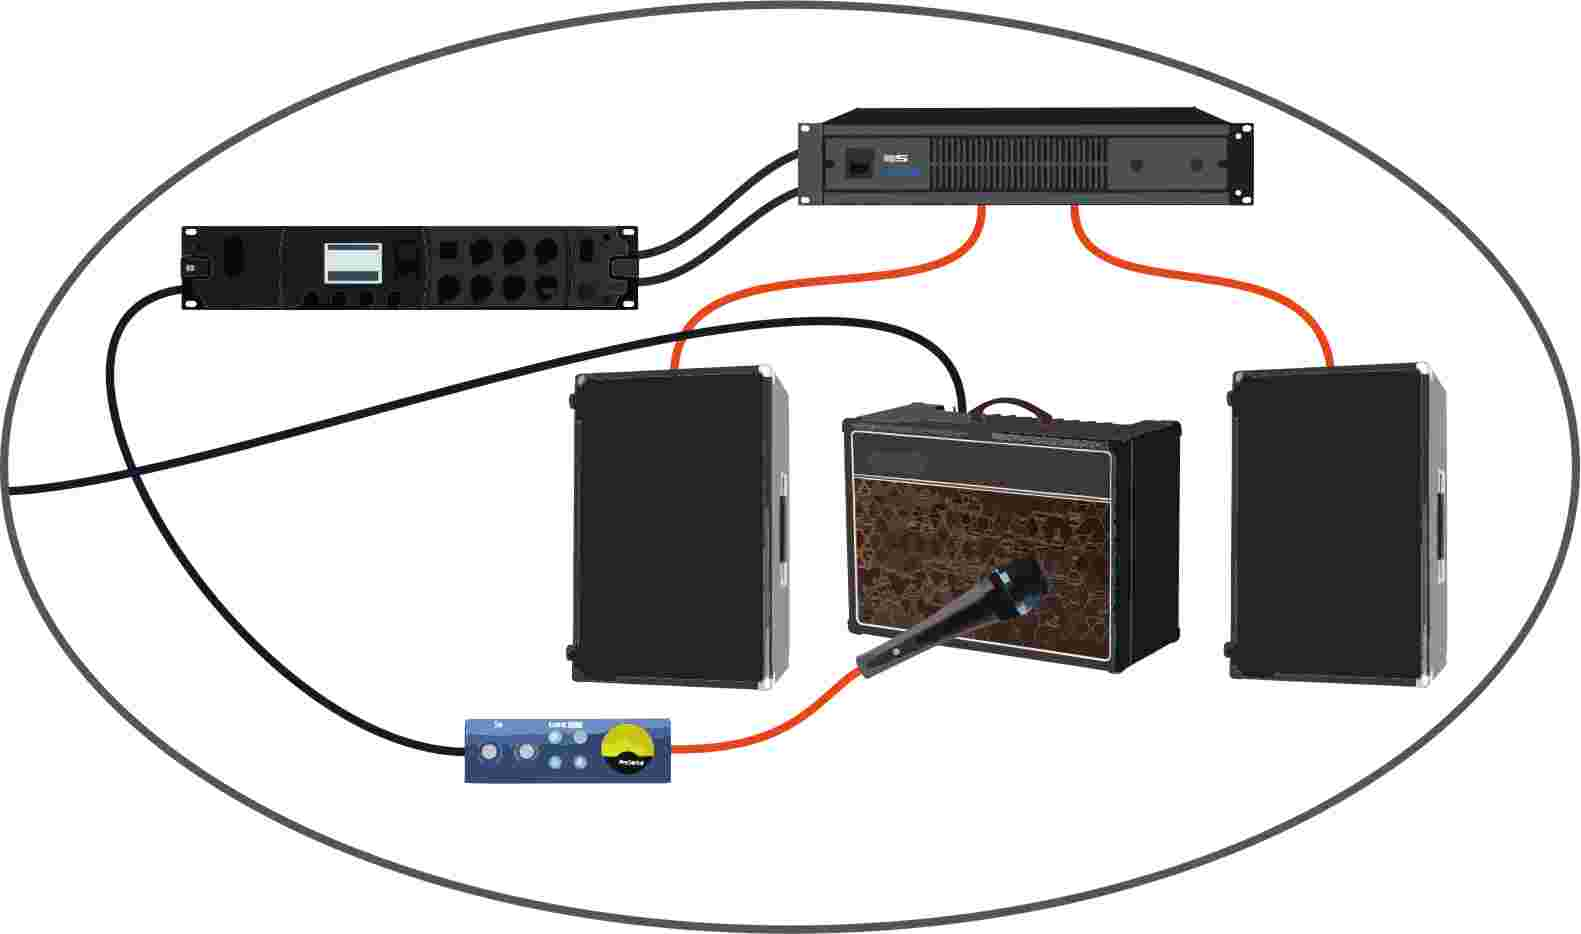 hight resolution of central to this arrangement is the combo amp fed directly from the guitar effects array shown above this amp is the dry sound in the phrase wet dry wet